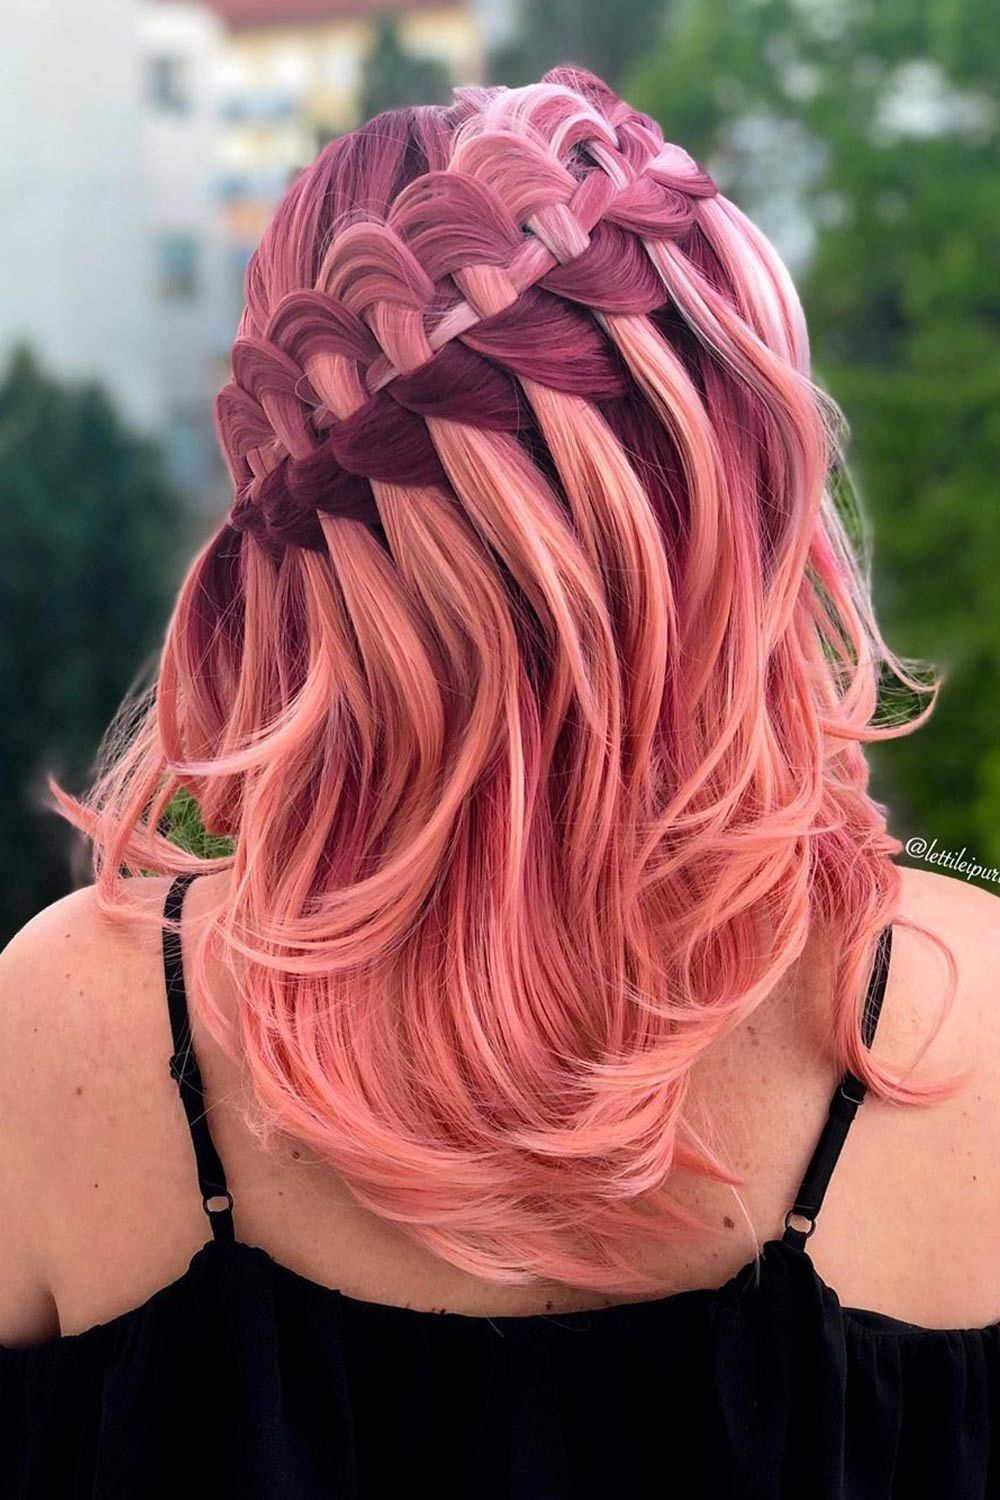 Pink Ombre Hair With Ladder Braid